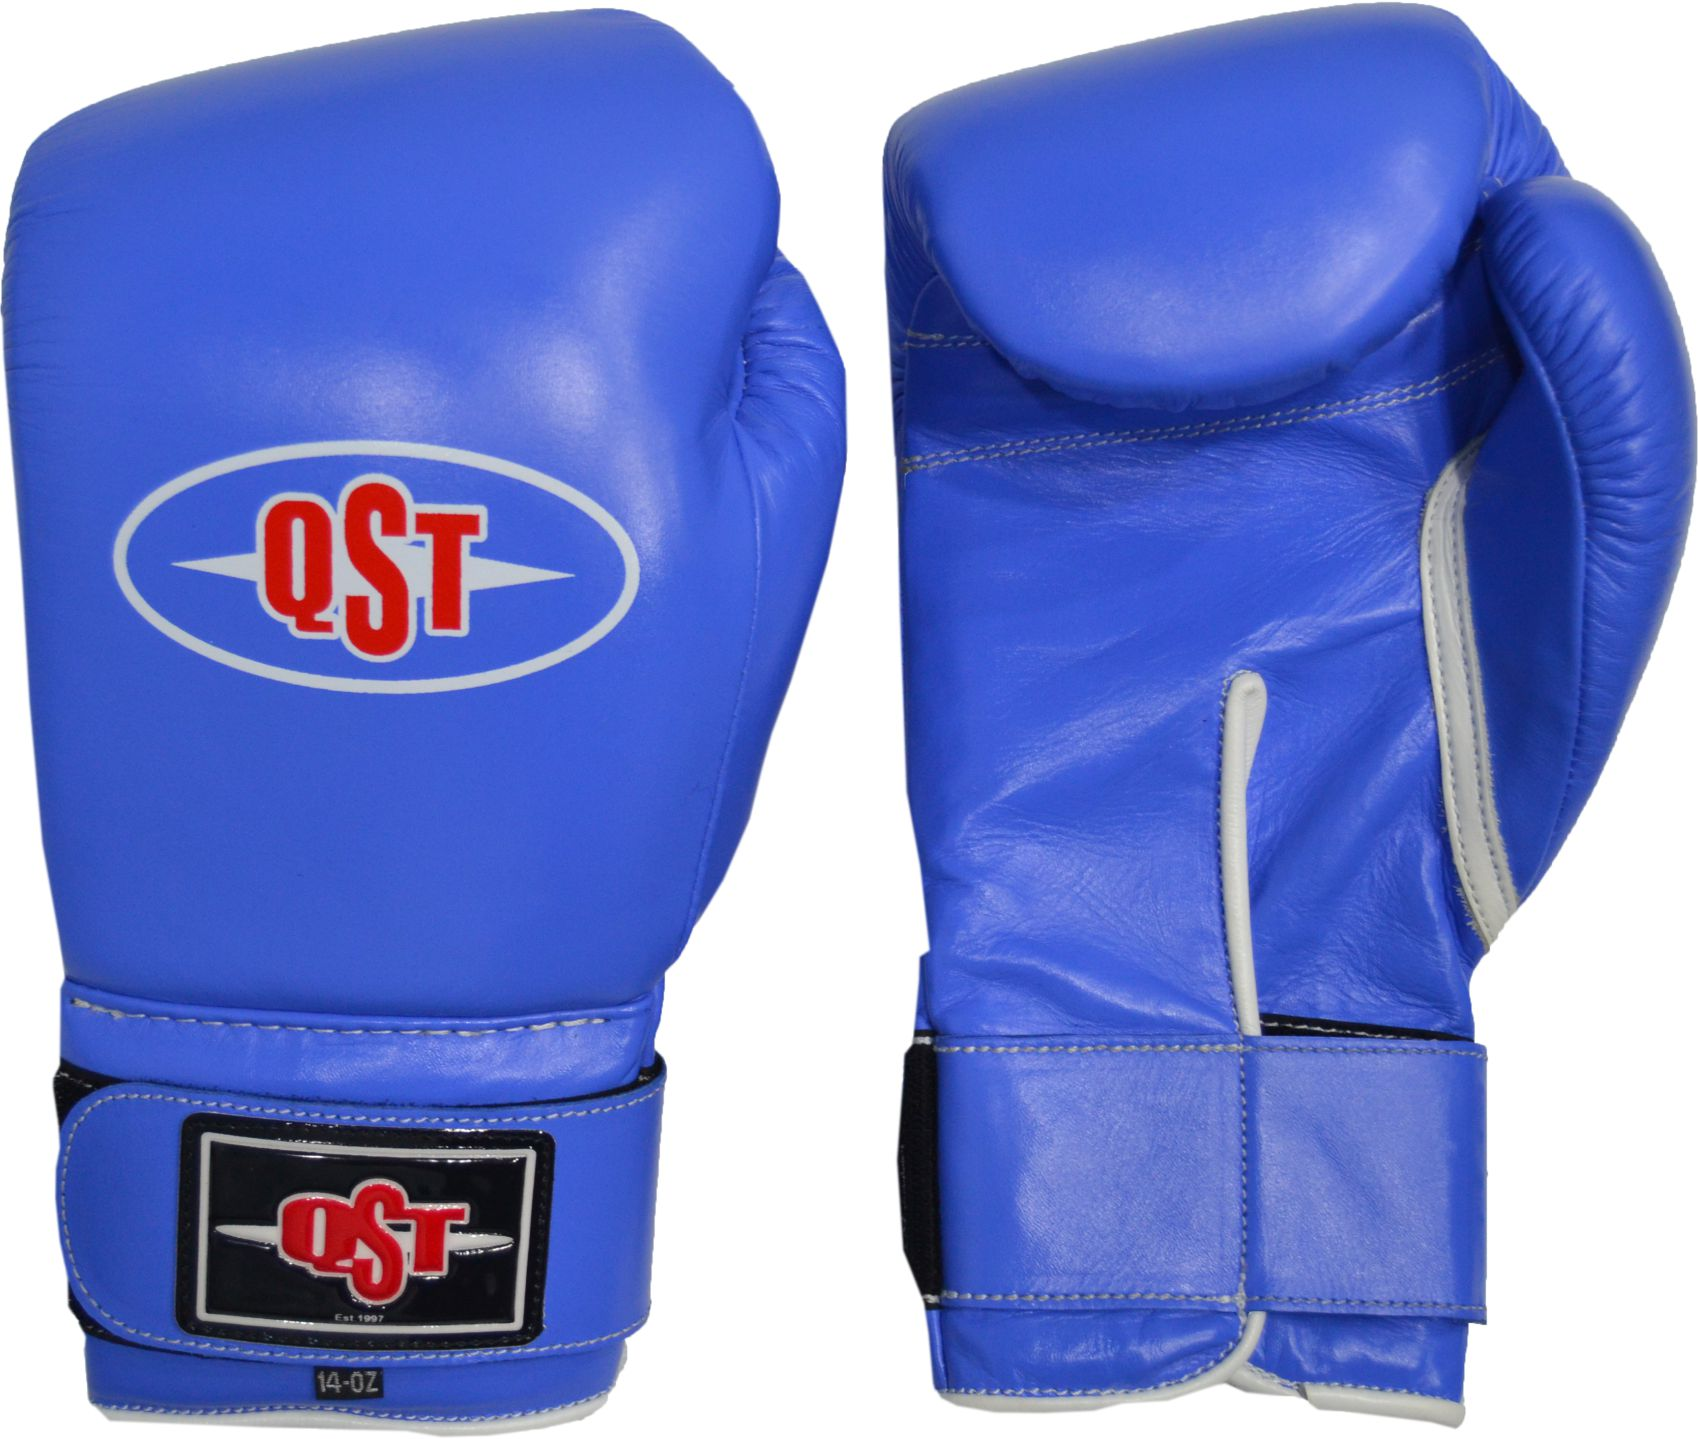 Training Boxing Gloves - PRG-2028